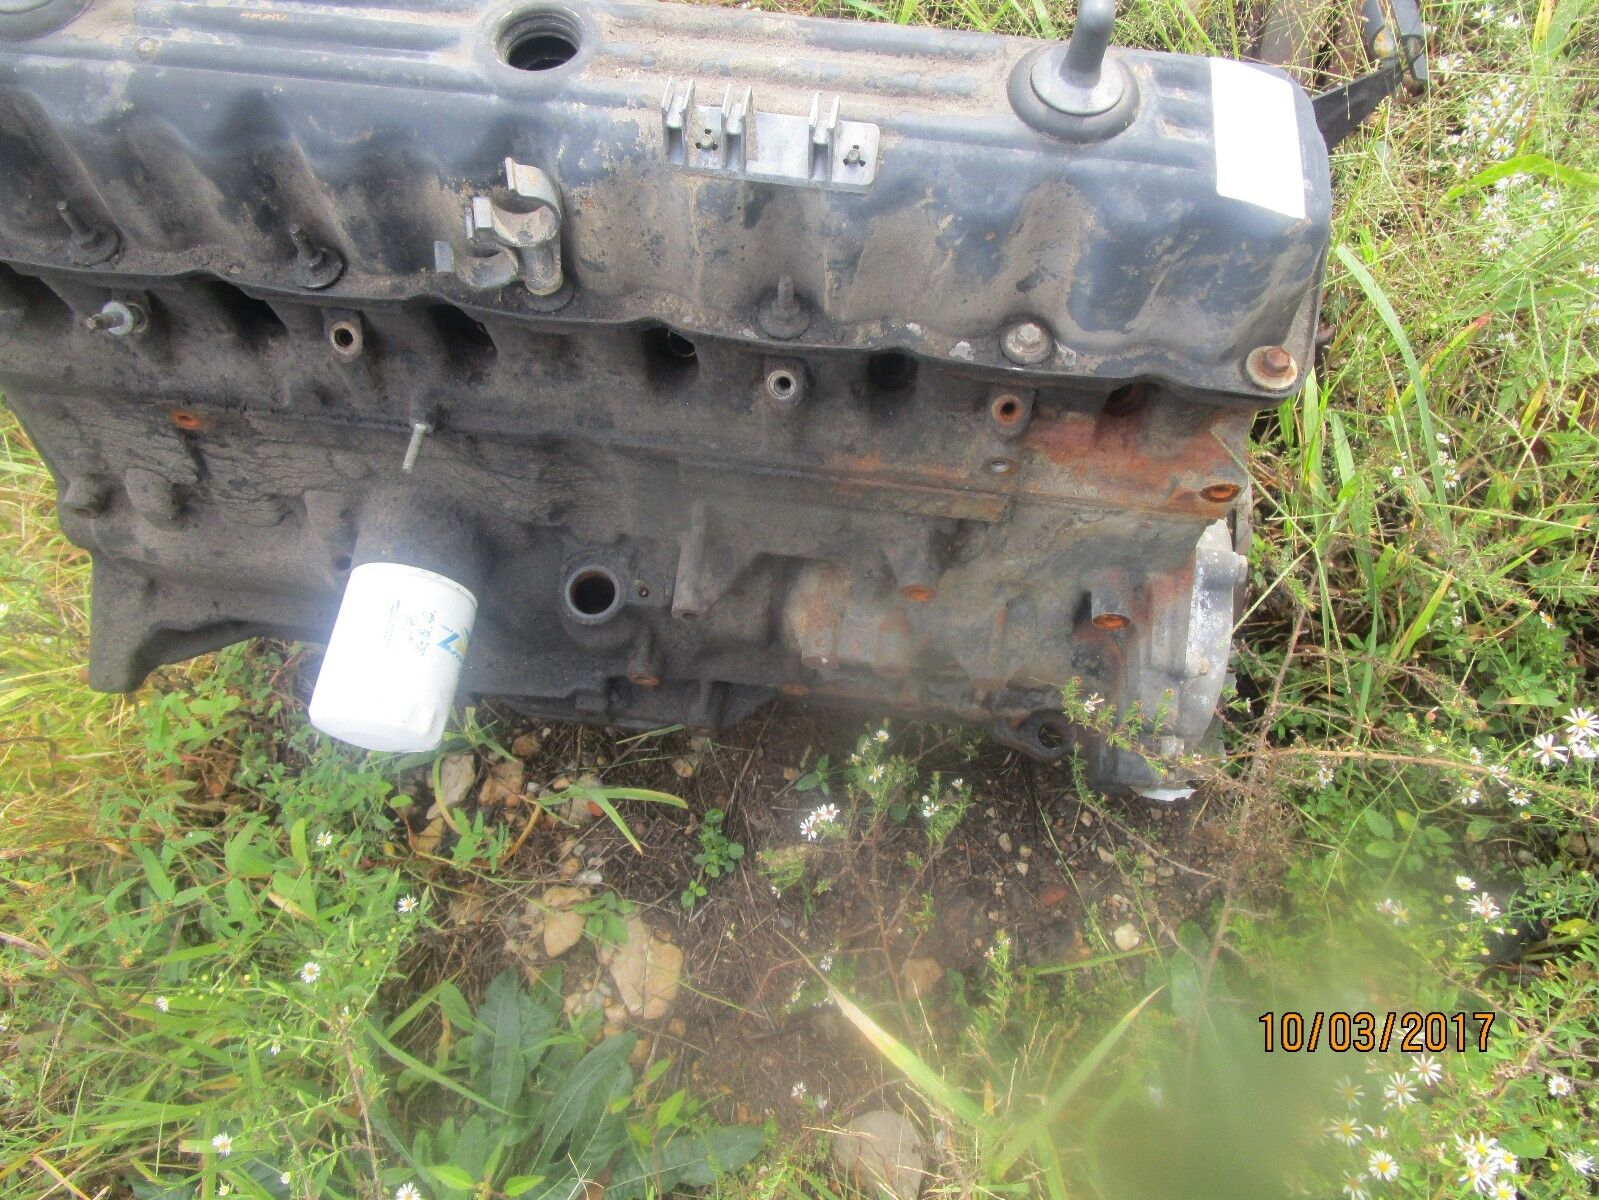 Used Jeep Block Parts For Sale 4 0l Engine Bellhousing Diagram Oem 1999 2004 Grand Cherokee Wrangler 40l With Main Caps